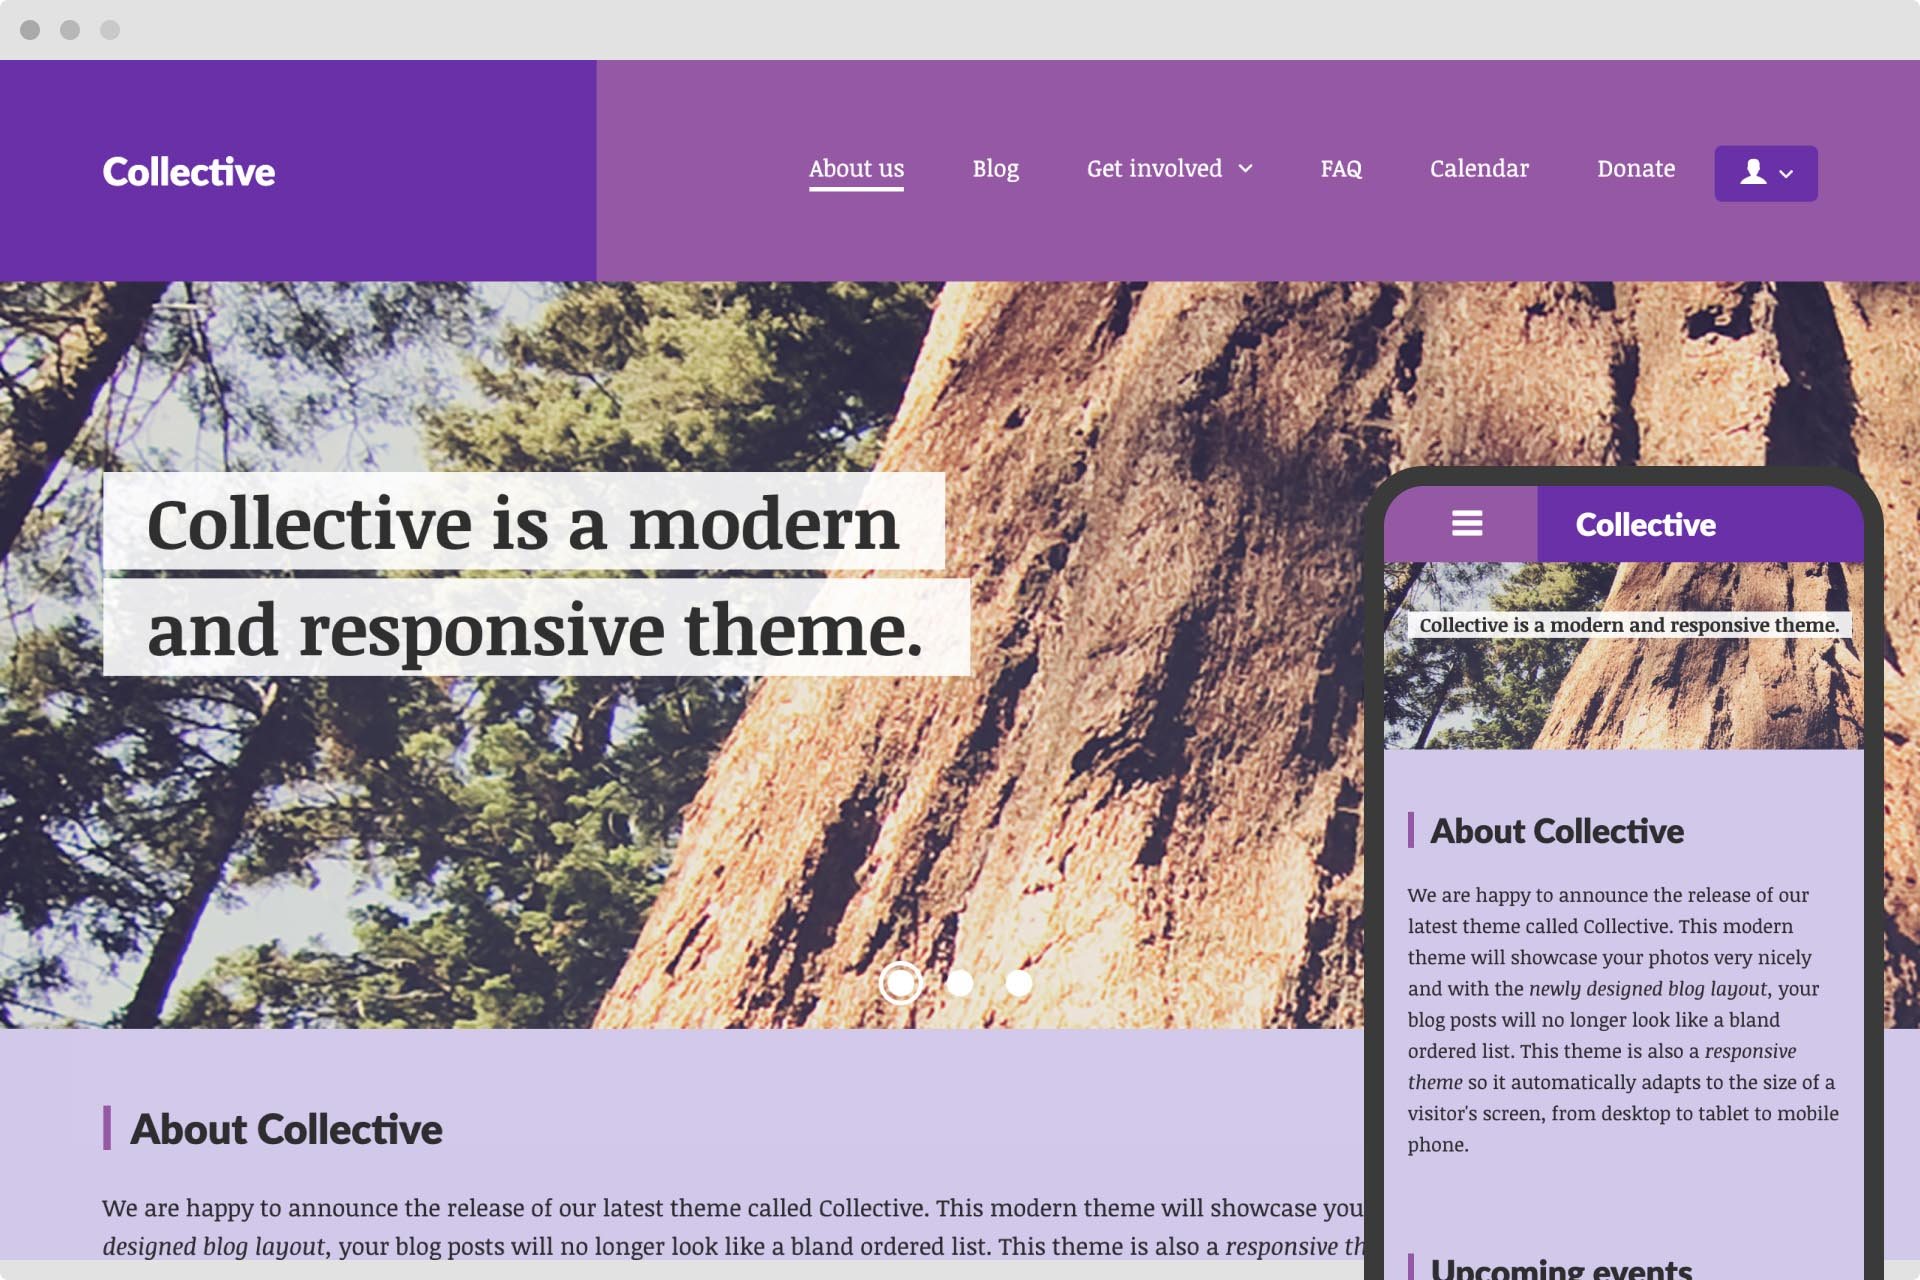 Collective theme